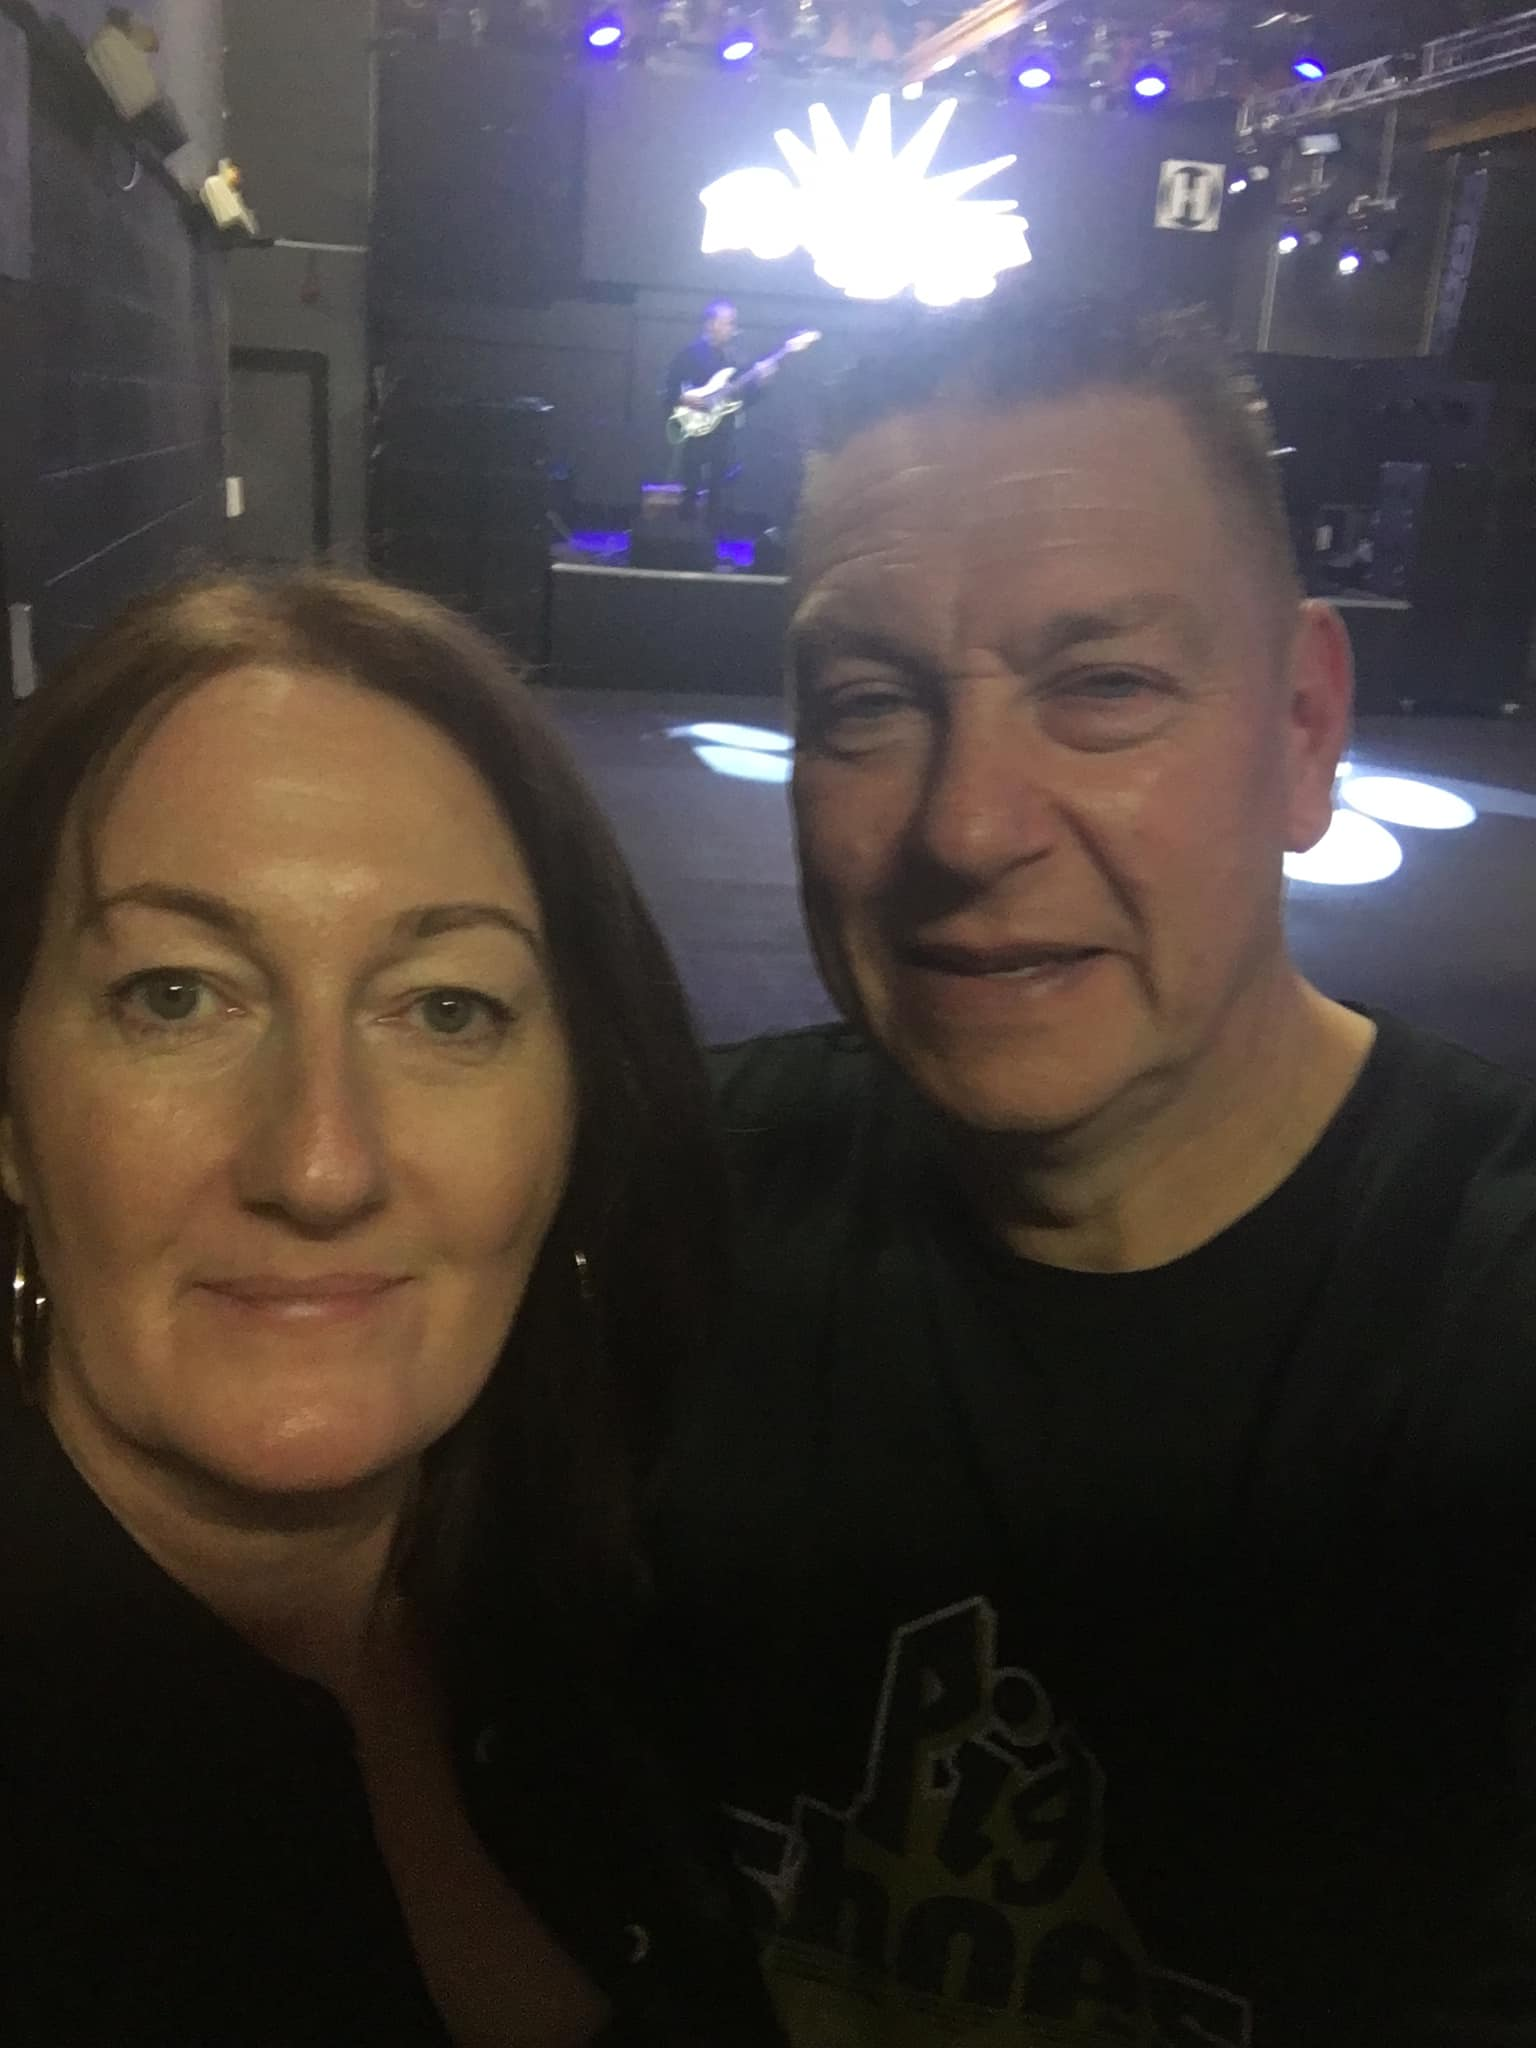 Rock on! Couple raise £3,500 for charity with gig